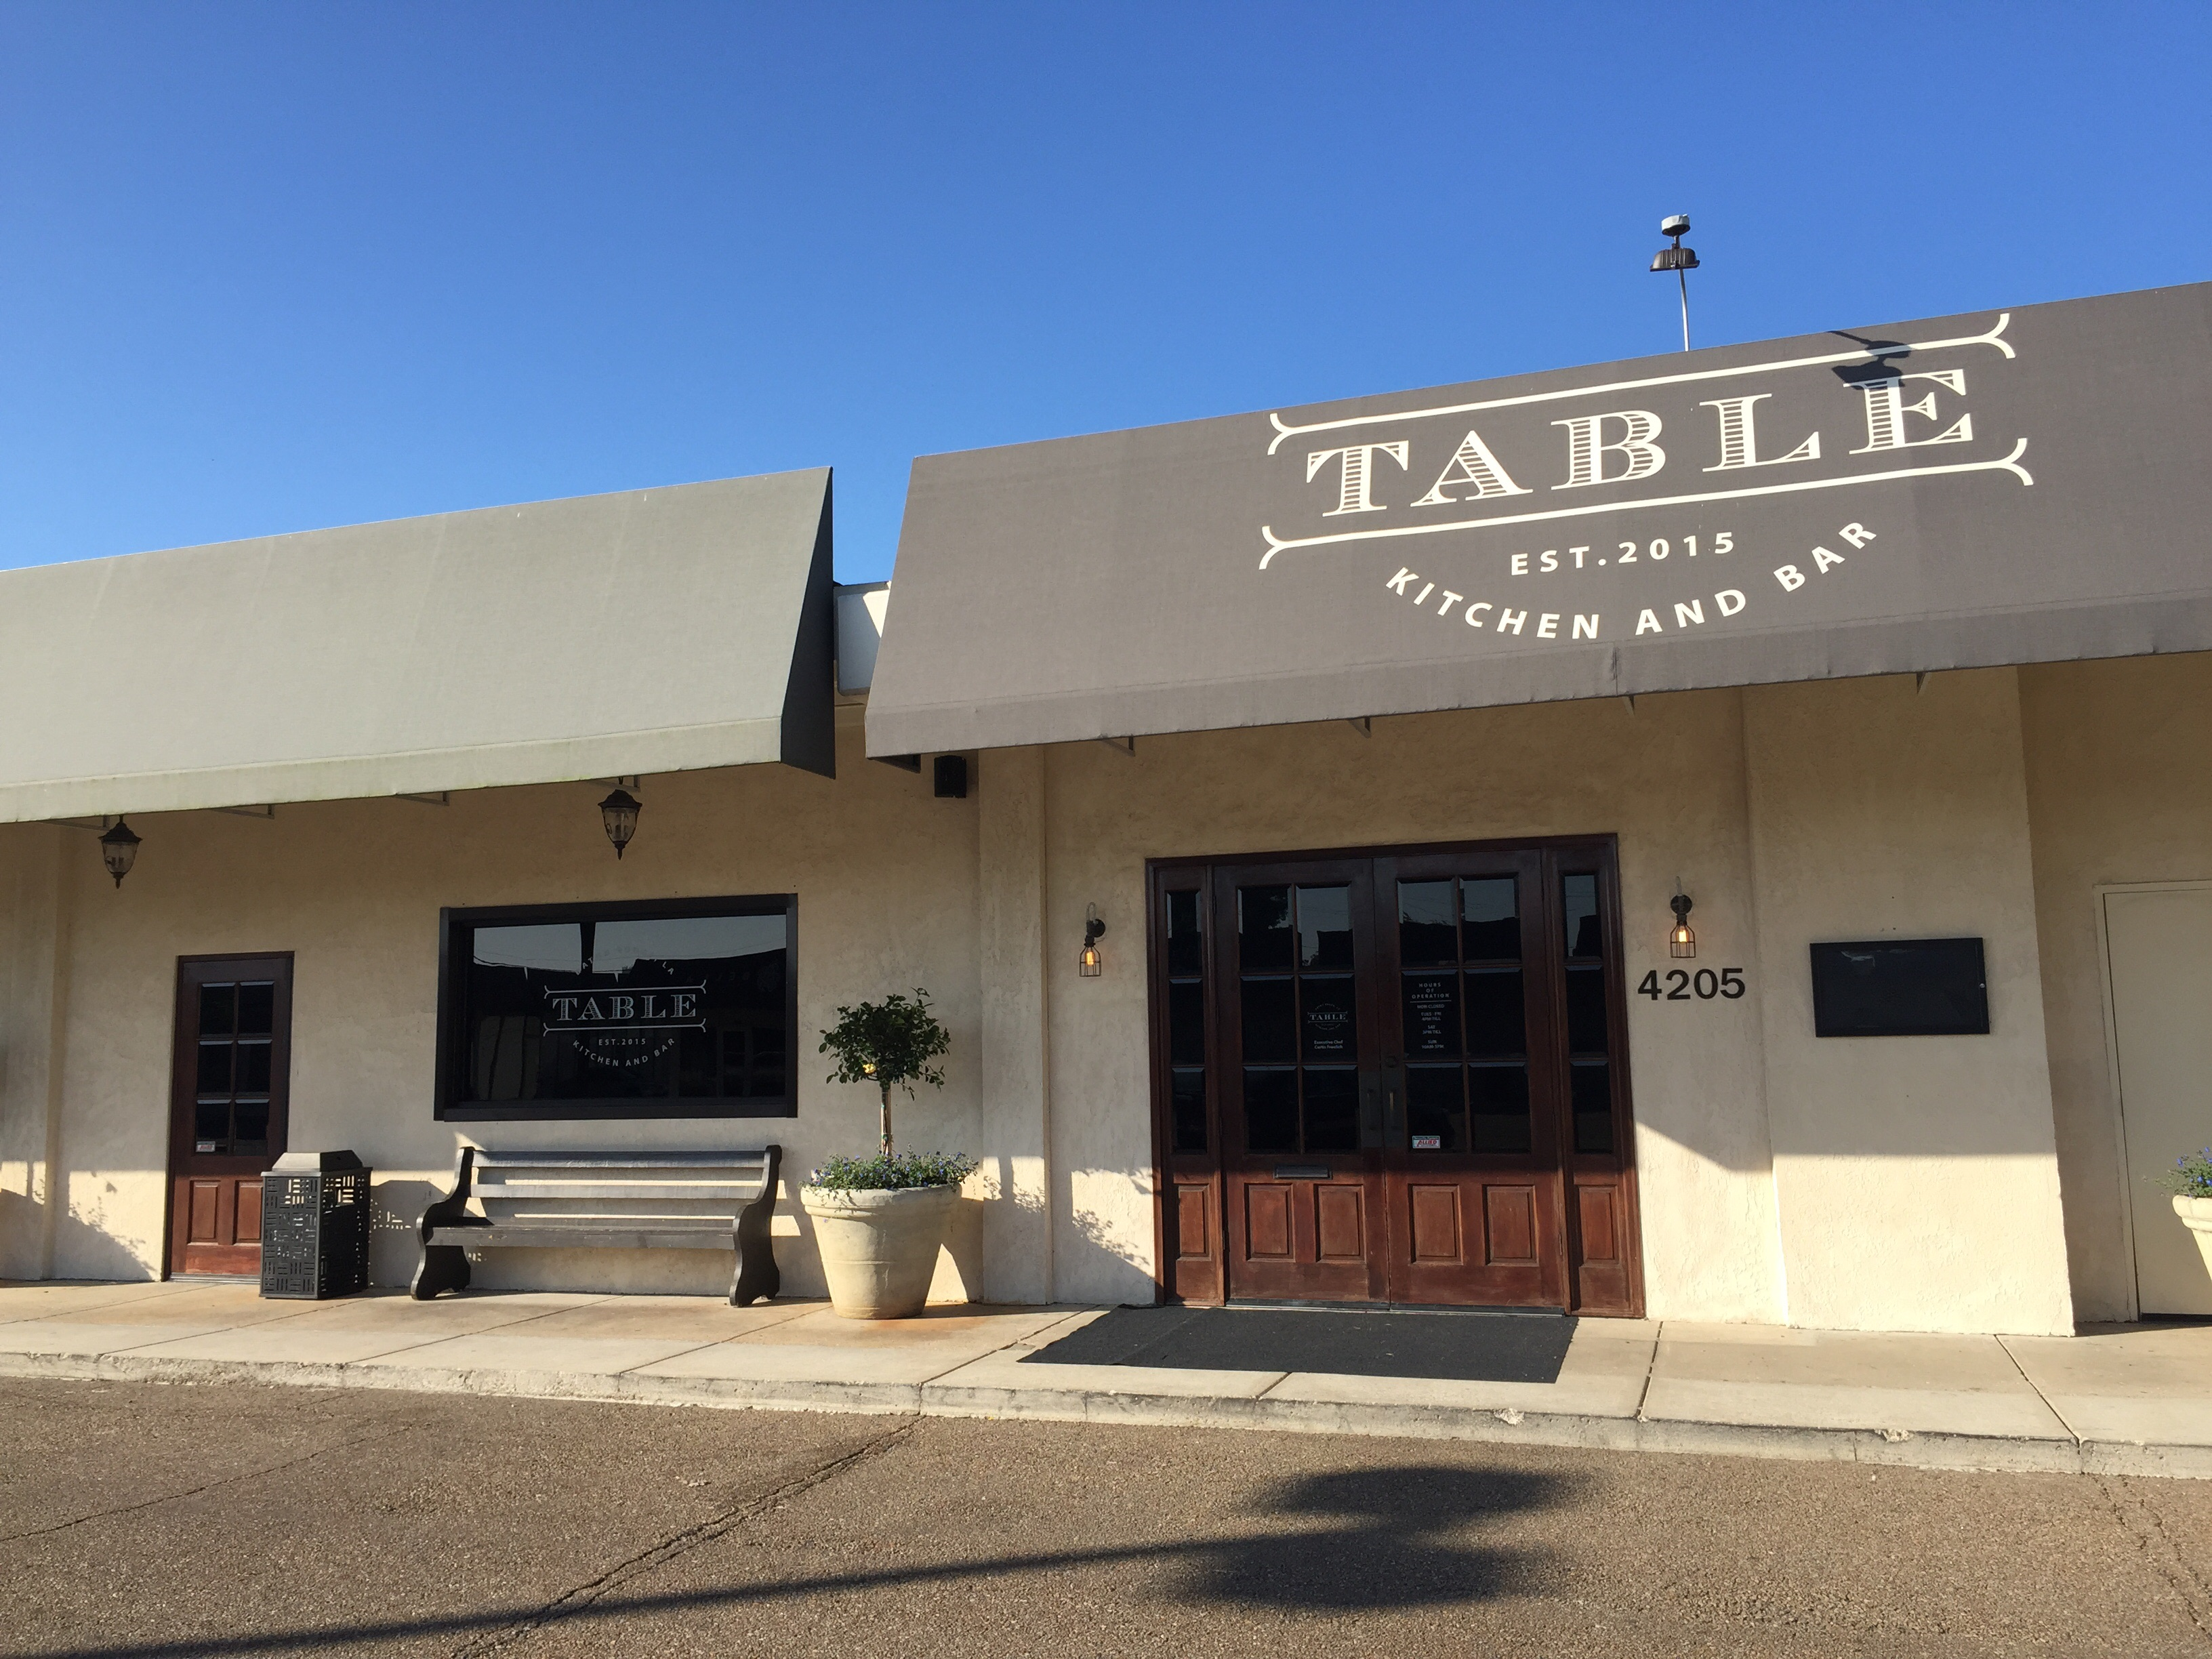 Table Kitchen & Bar to open April 9